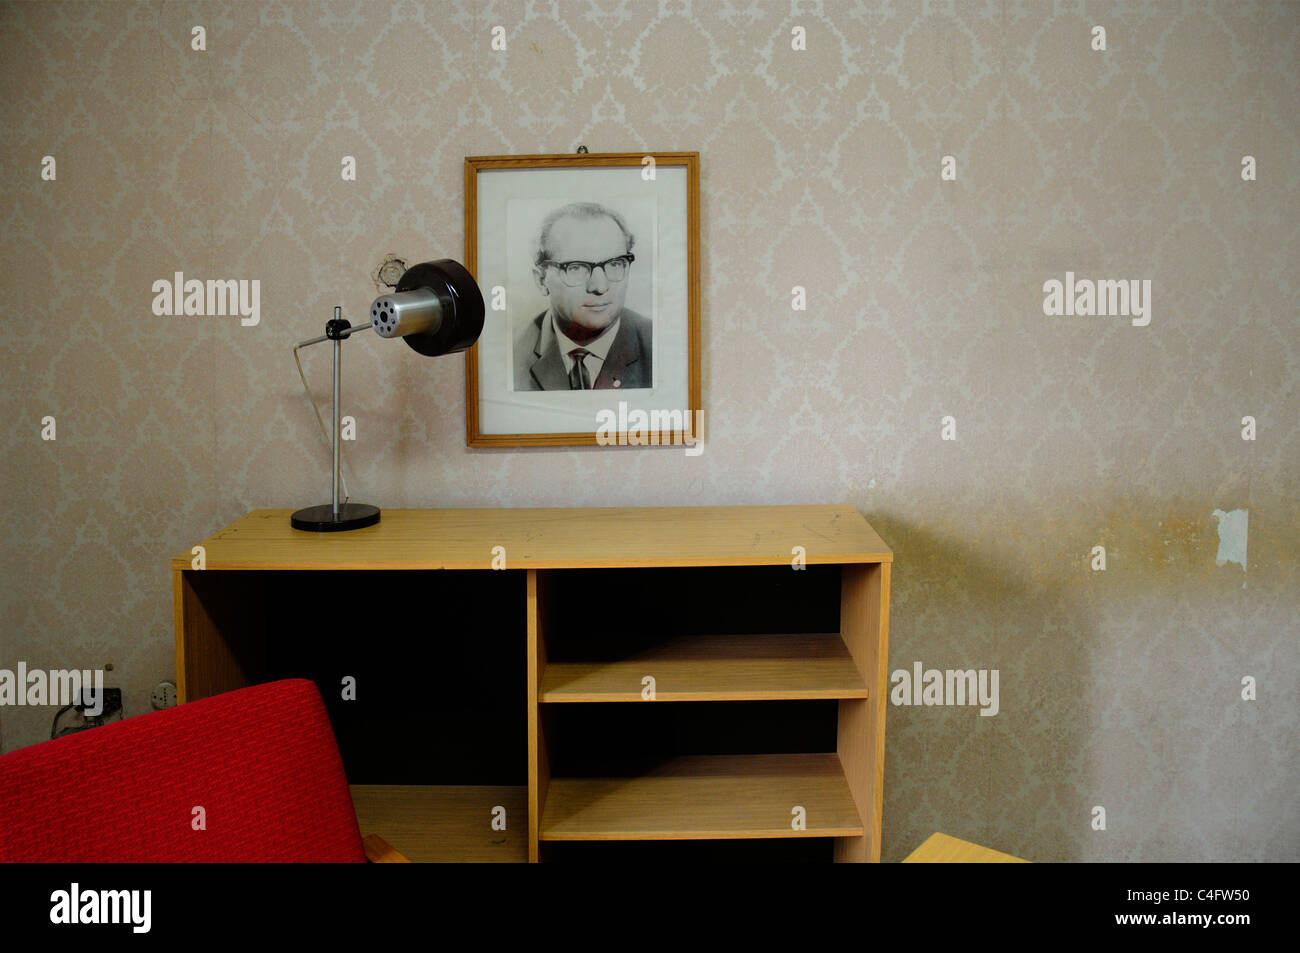 An interrogation office in Hohenschonhausen prison with a portrait of Erich Honecker still on the wall - Stock Image